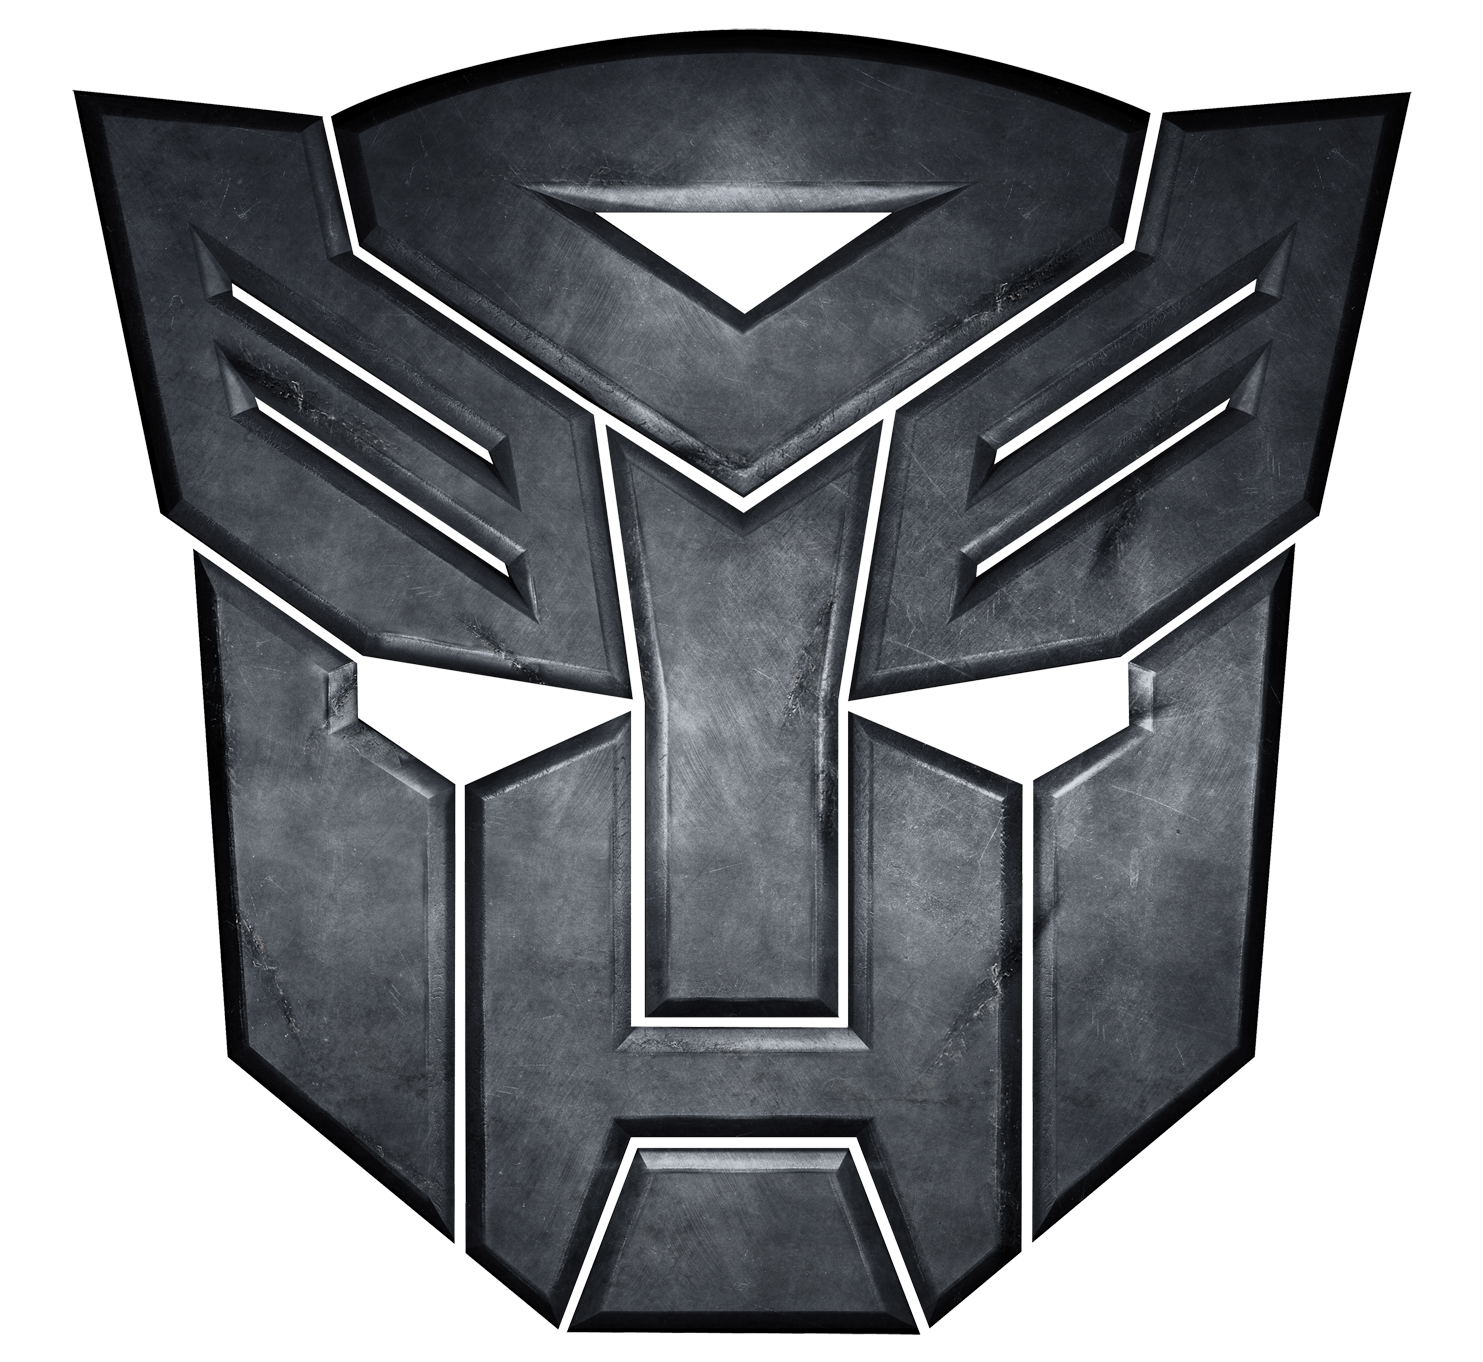 Autobots (Transformers Cinematic Universe)